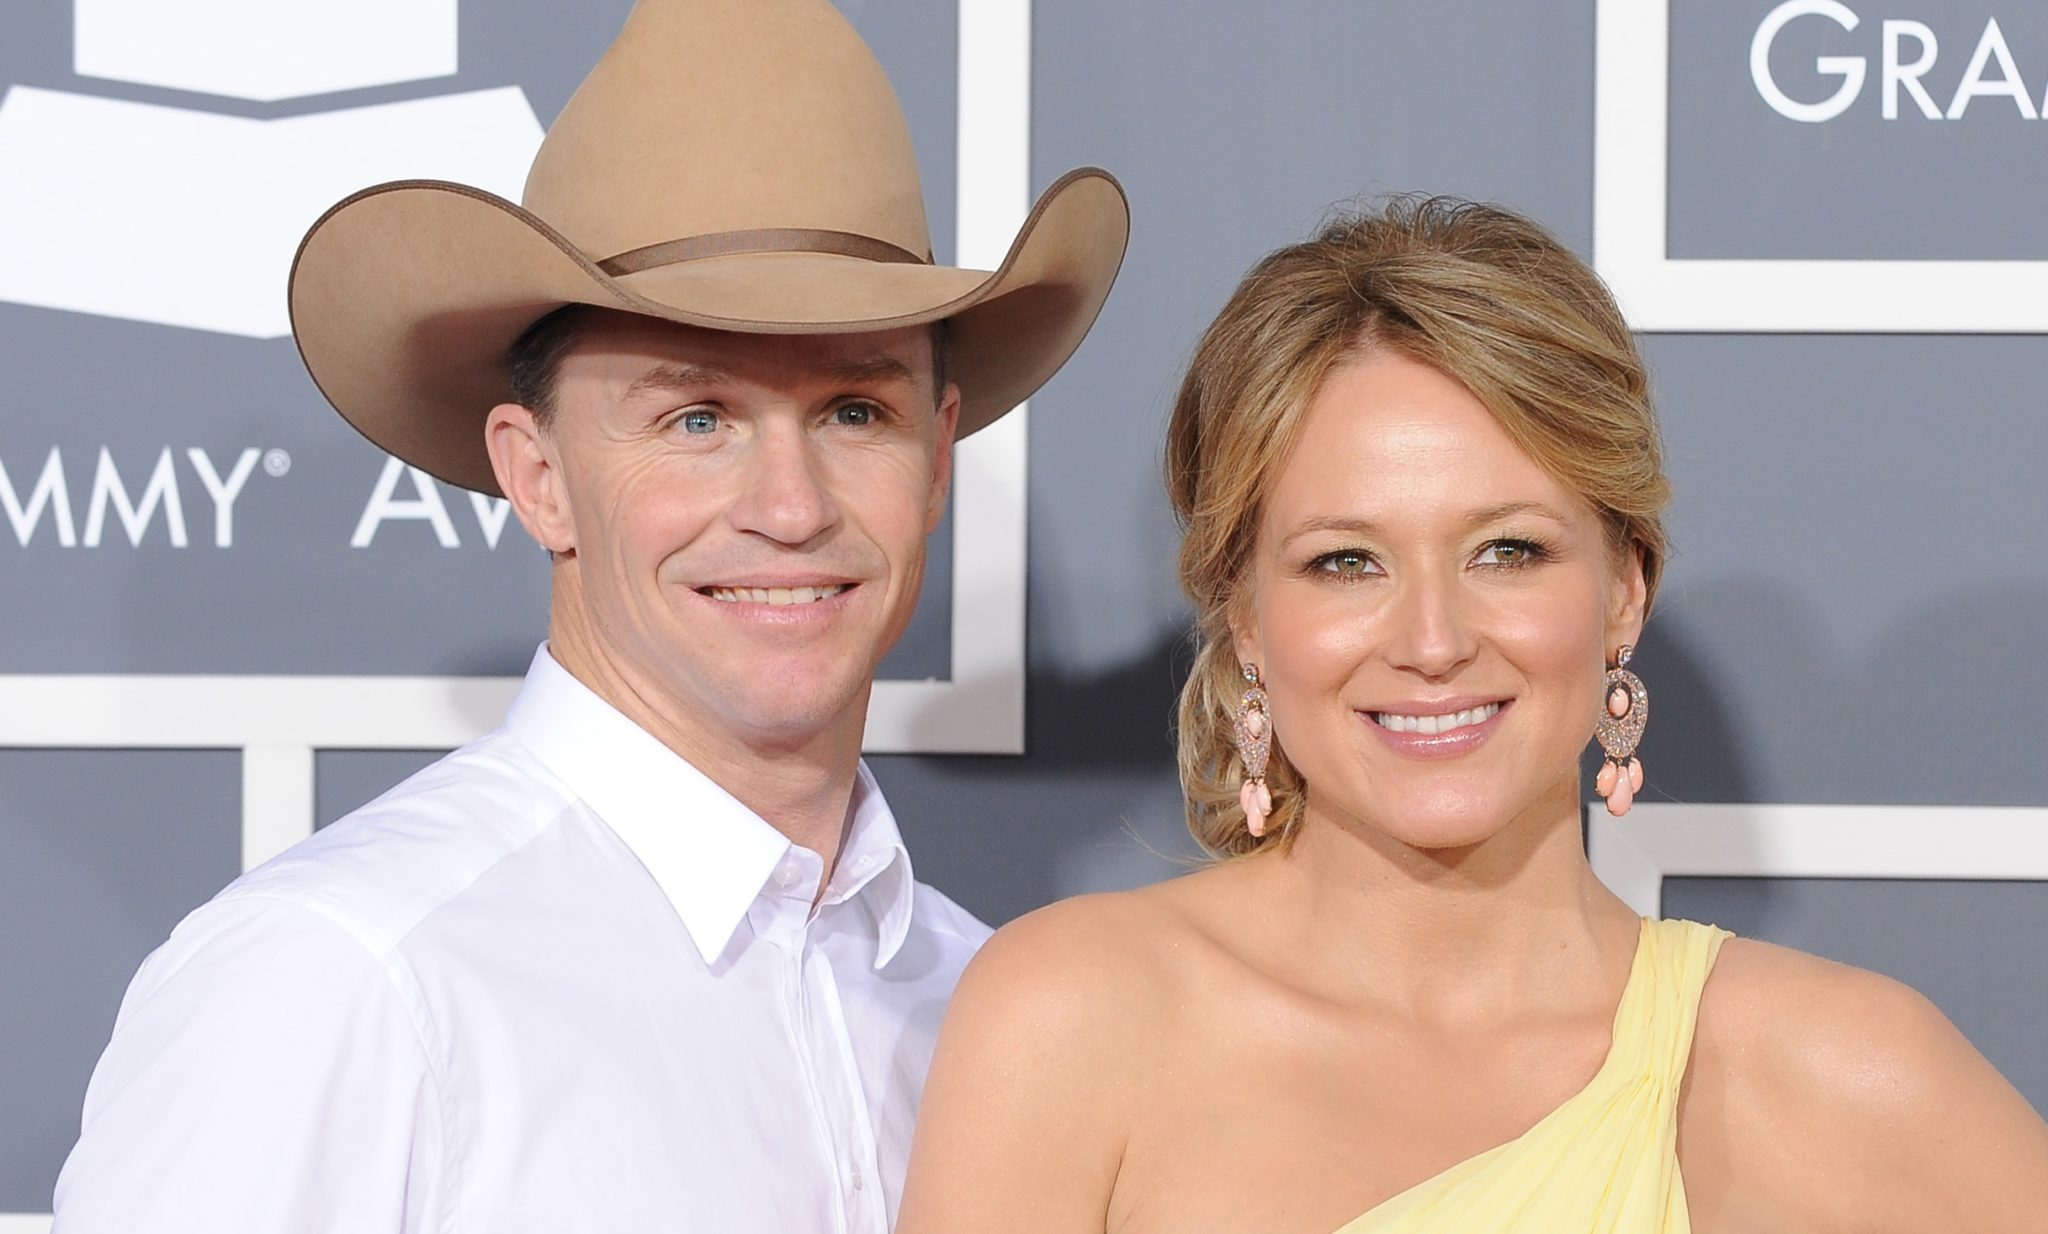 Jewel Kilcher: Who Is Dating After Divorced from Ty Murray? Check Her Age, Bio, Net Worth